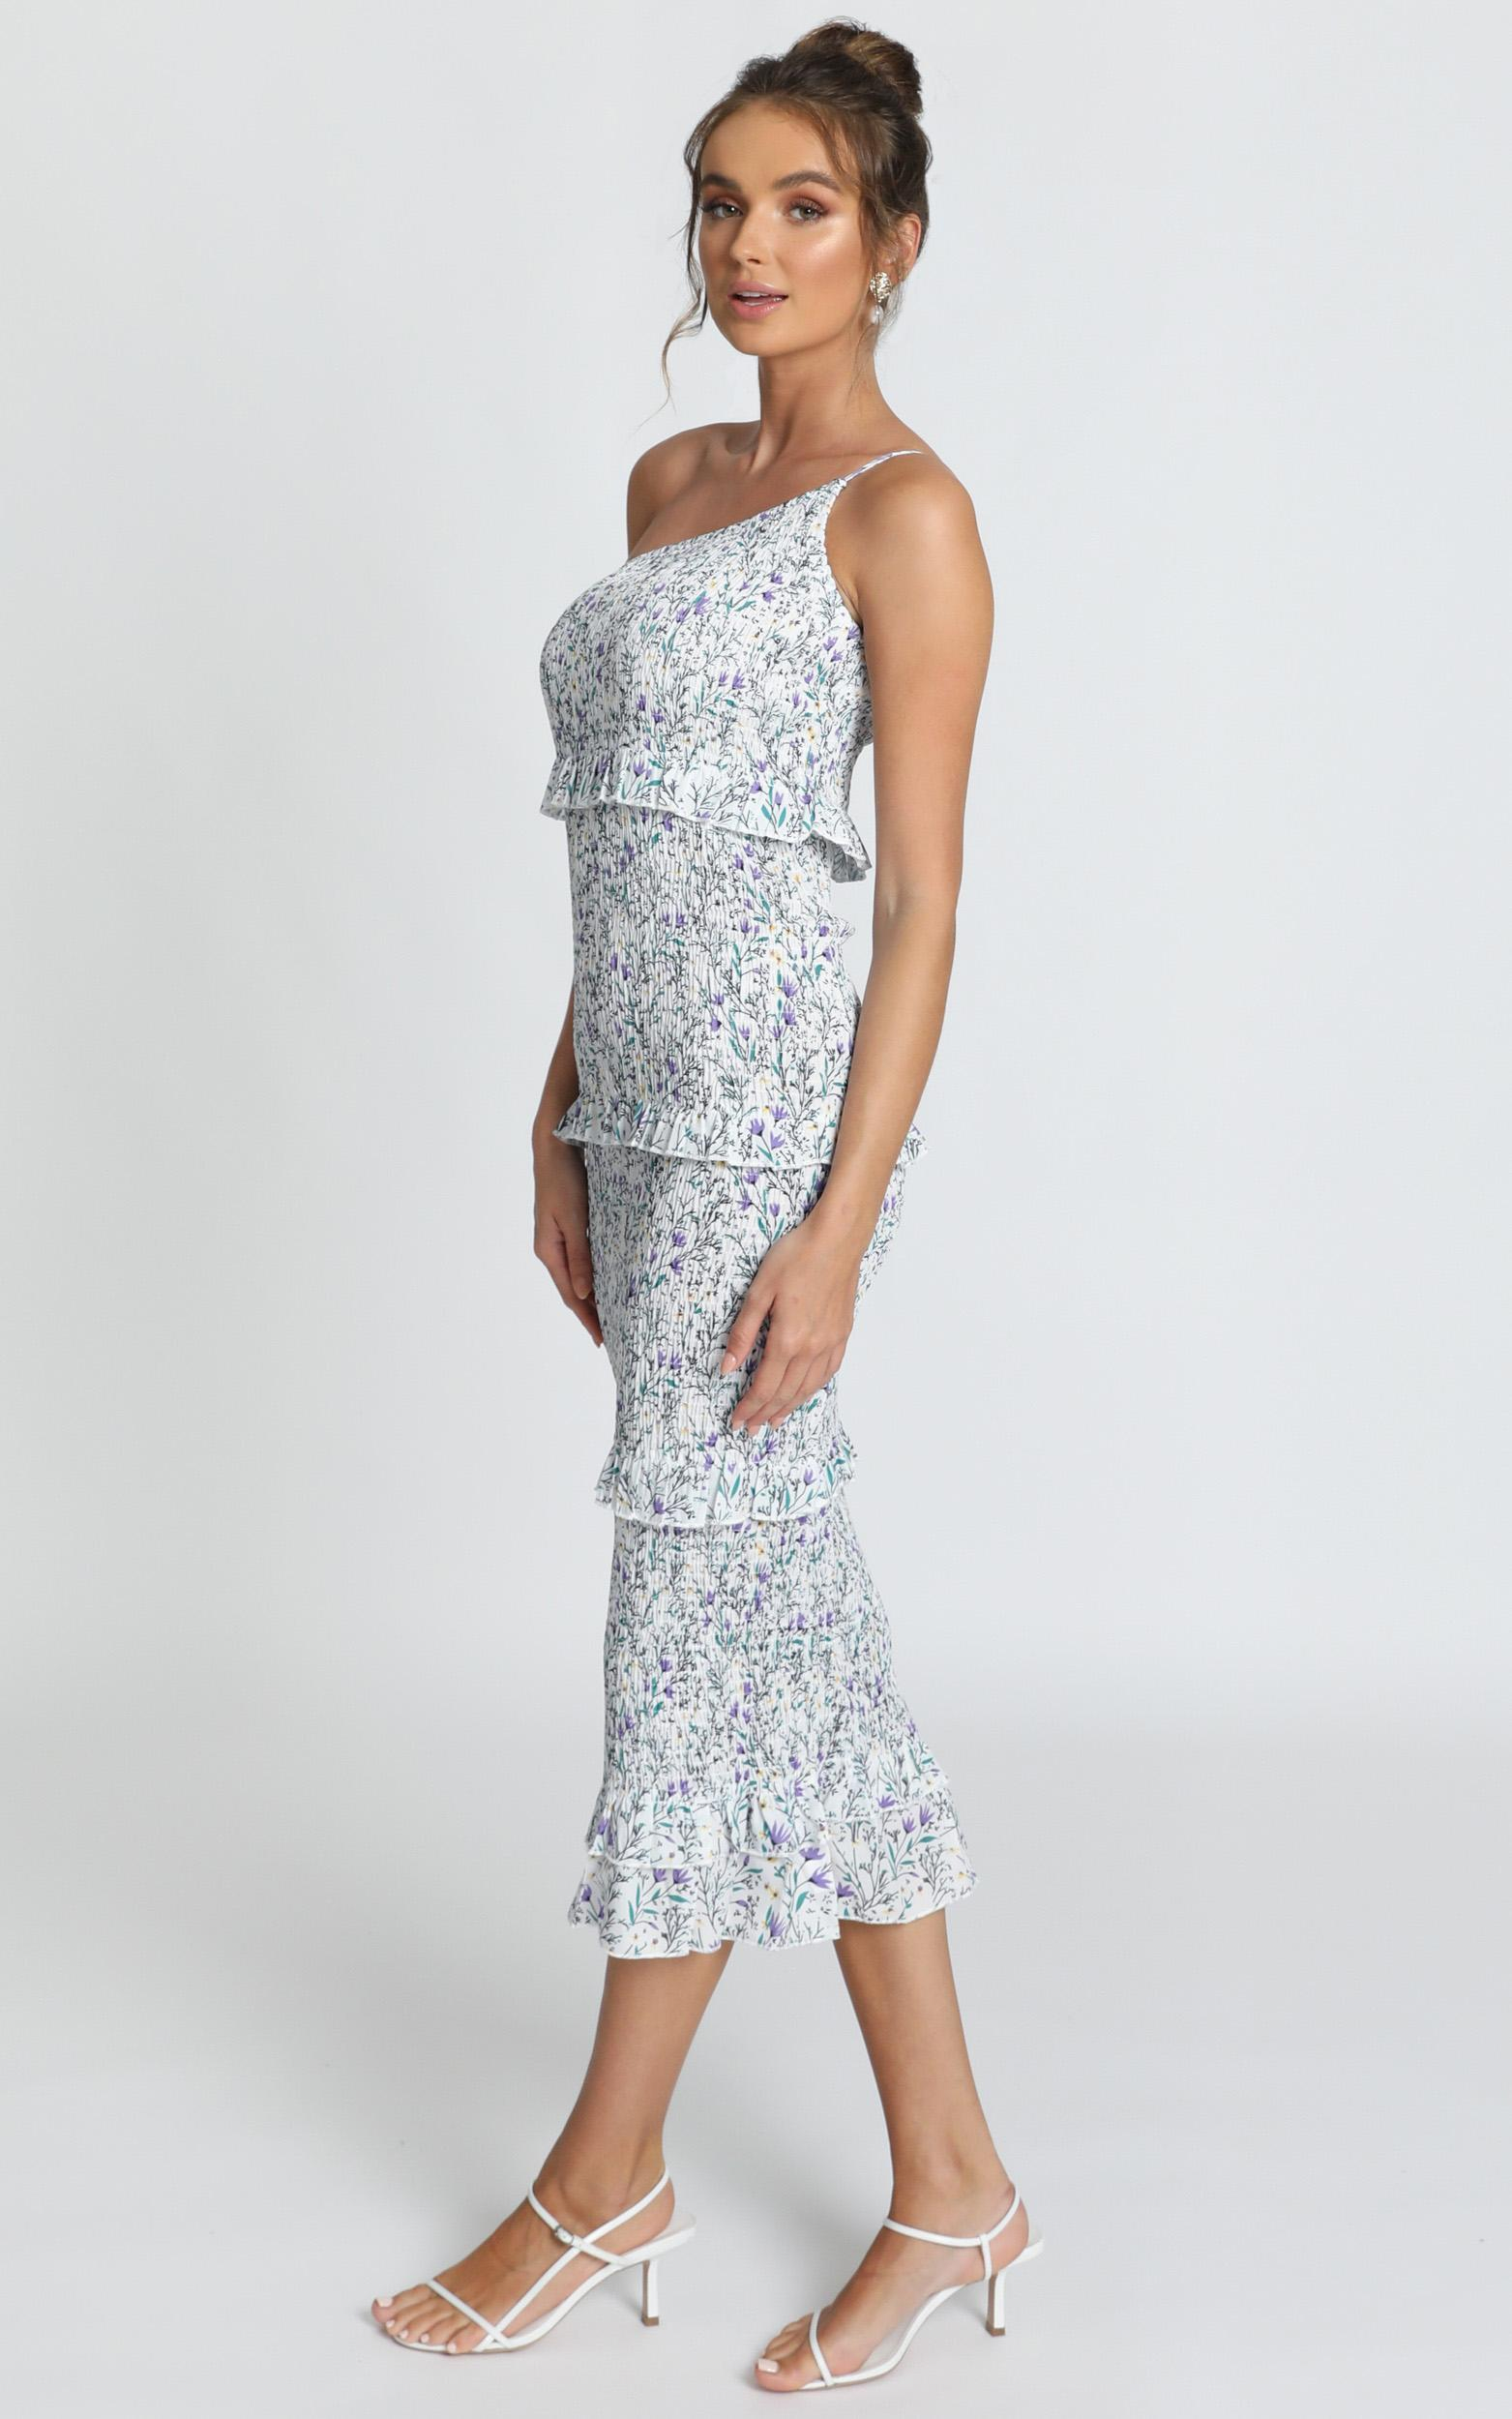 Little More Attention dress in white floral - 12 (L), White, hi-res image number null